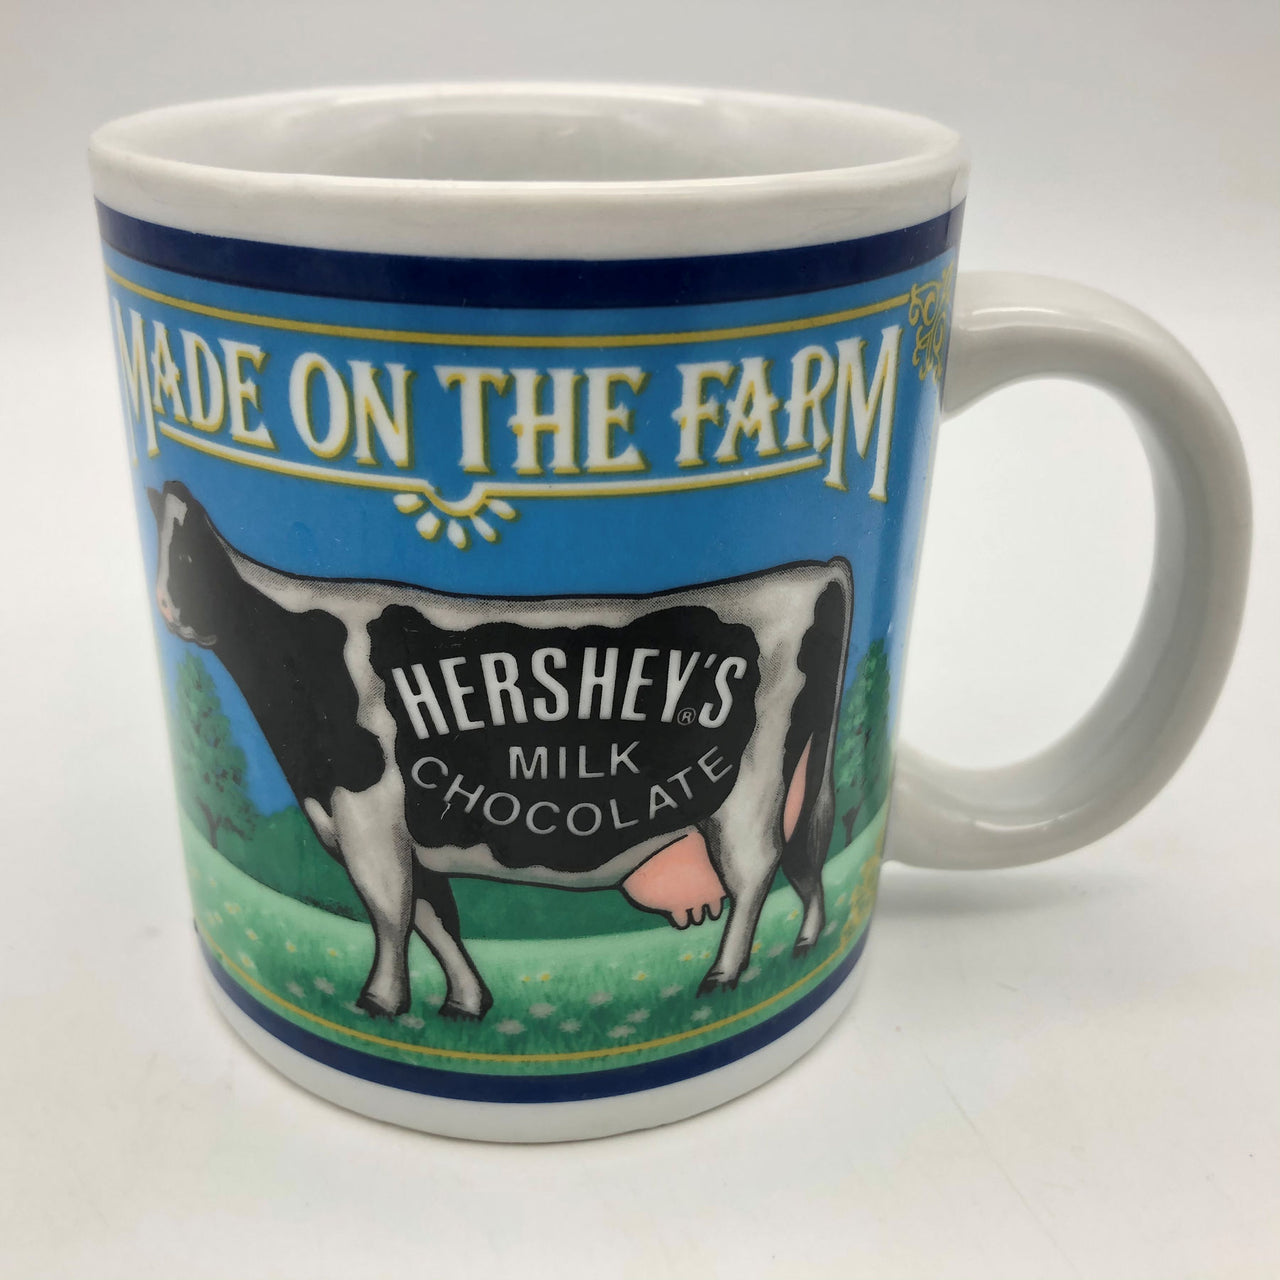 Hershey Foods Corp Mug Made on the Farm Hershey's Chocolate Milk Cow 1993